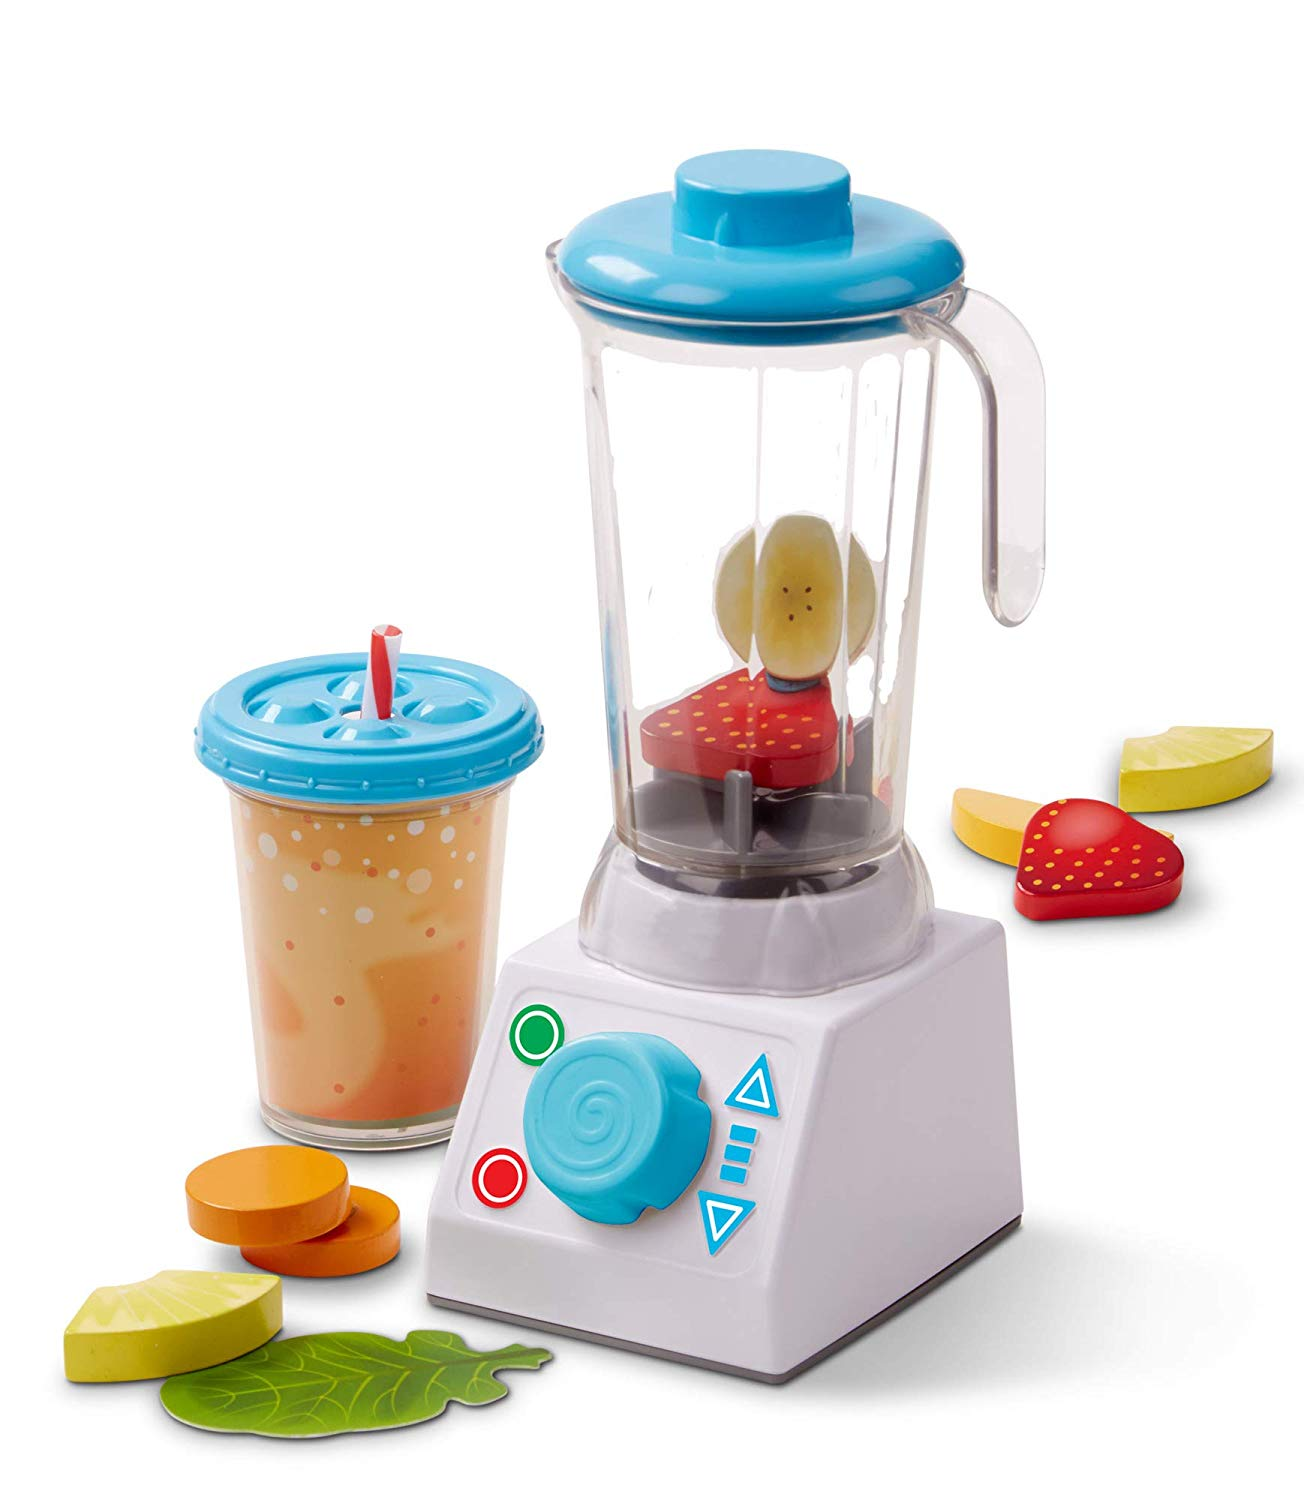 Melissa & Doug - Smoothie Maker Blender Set (19841)